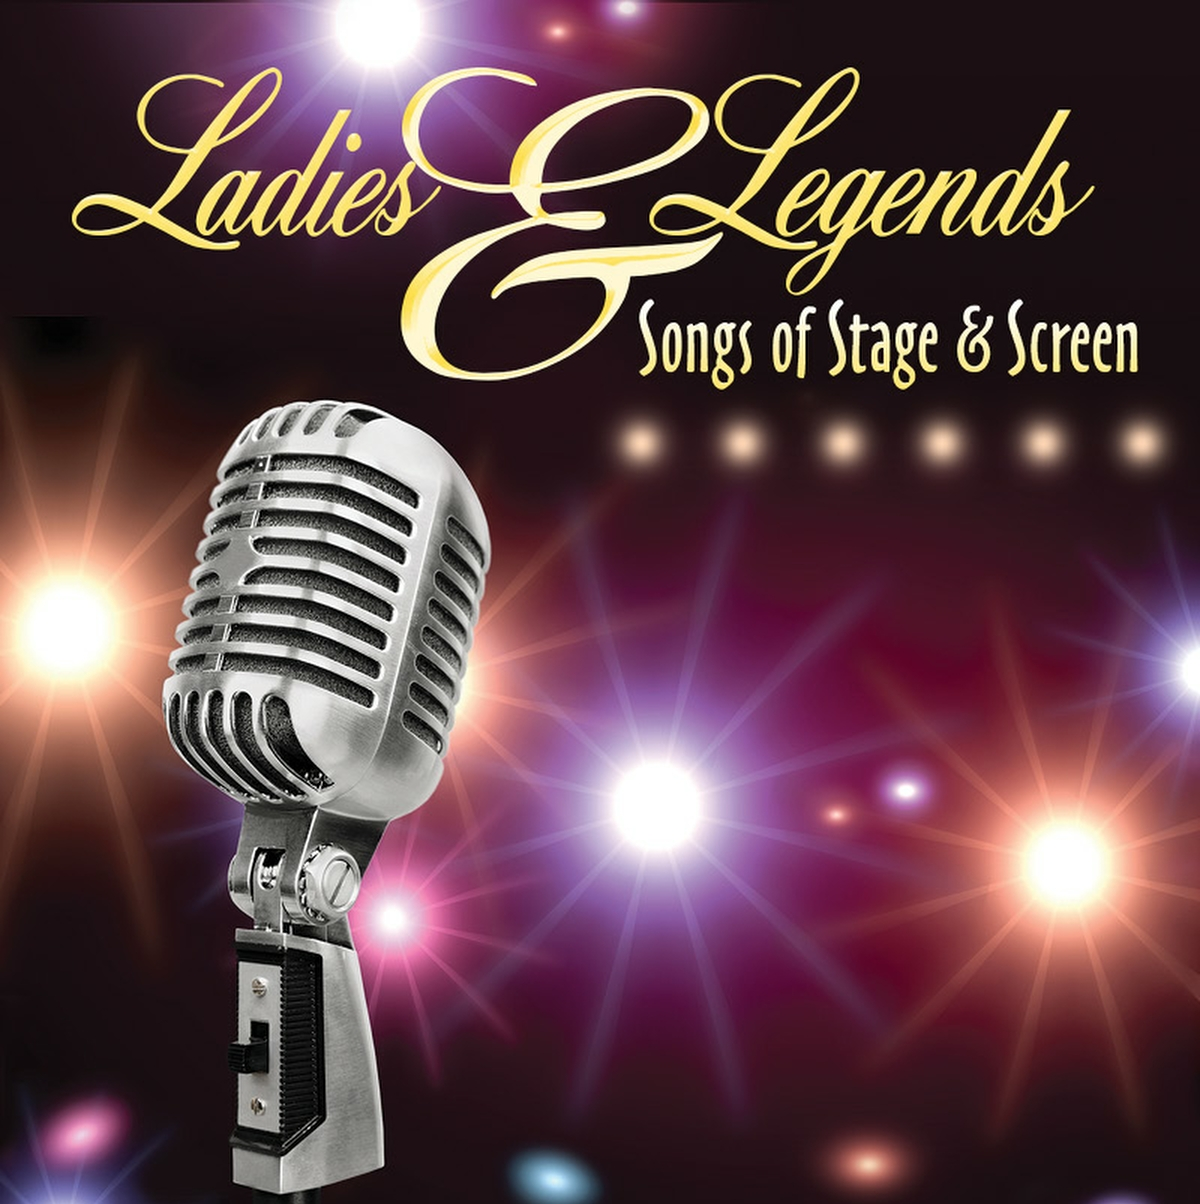 Theatre Memphis' <i>Ladies & Legends</i> image